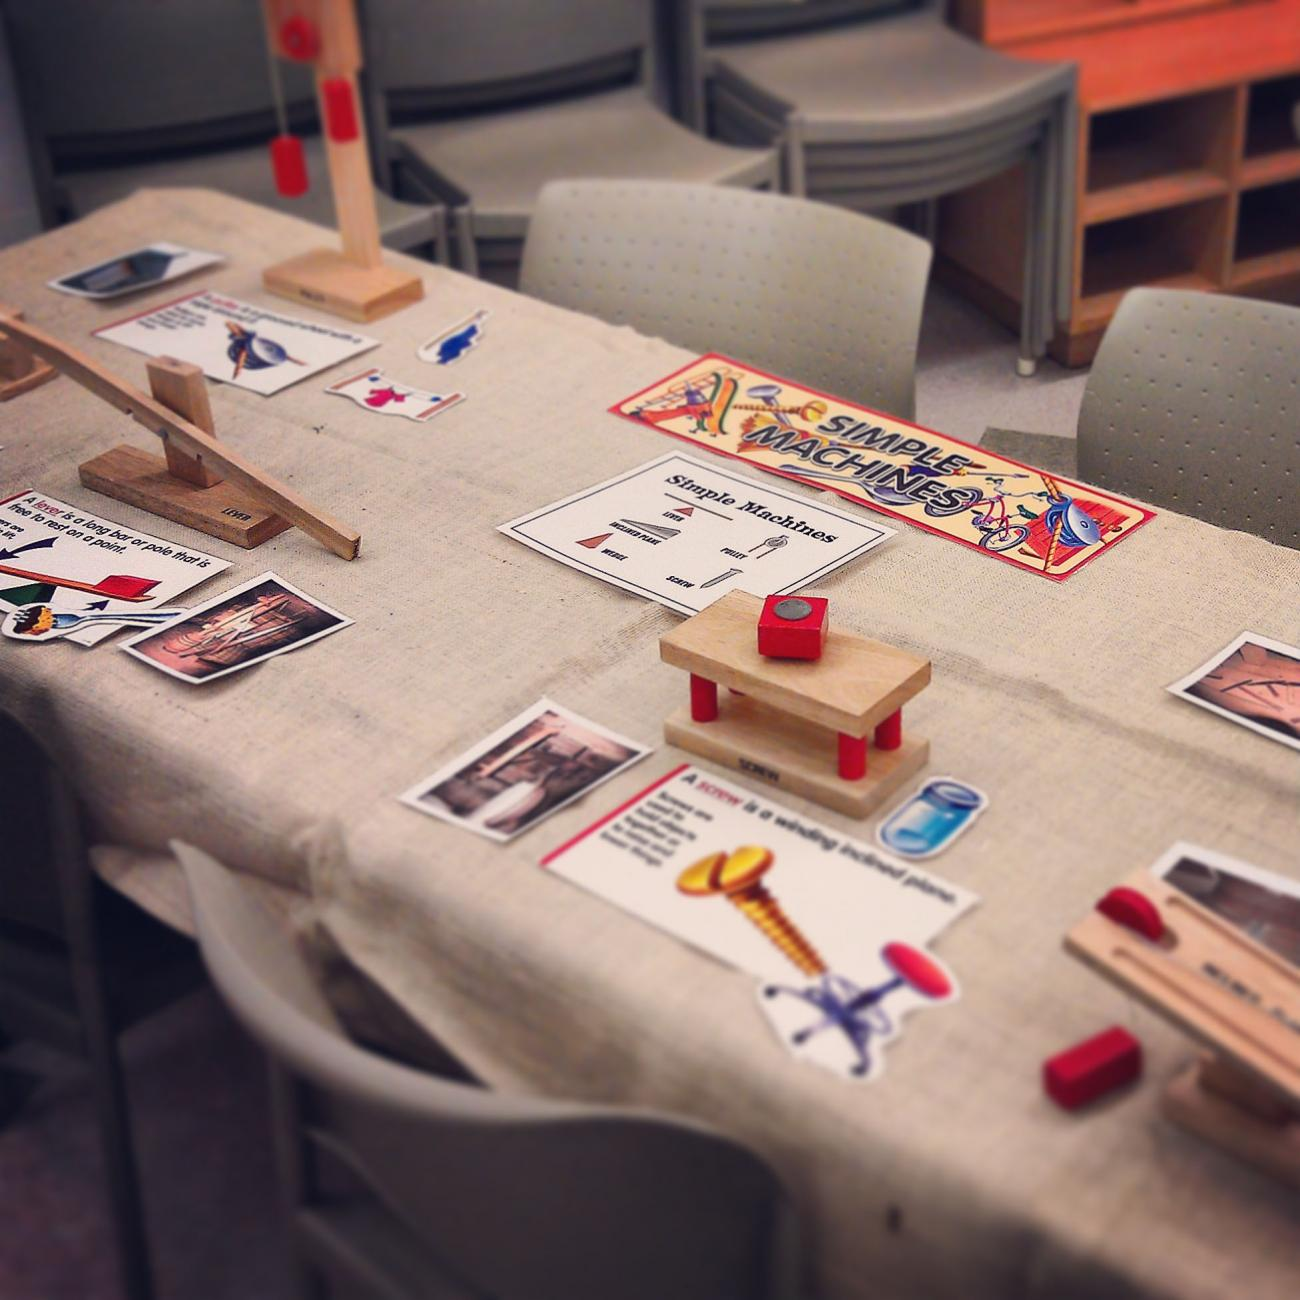 wooden simple machines models (pulley, lever, wheel) on table